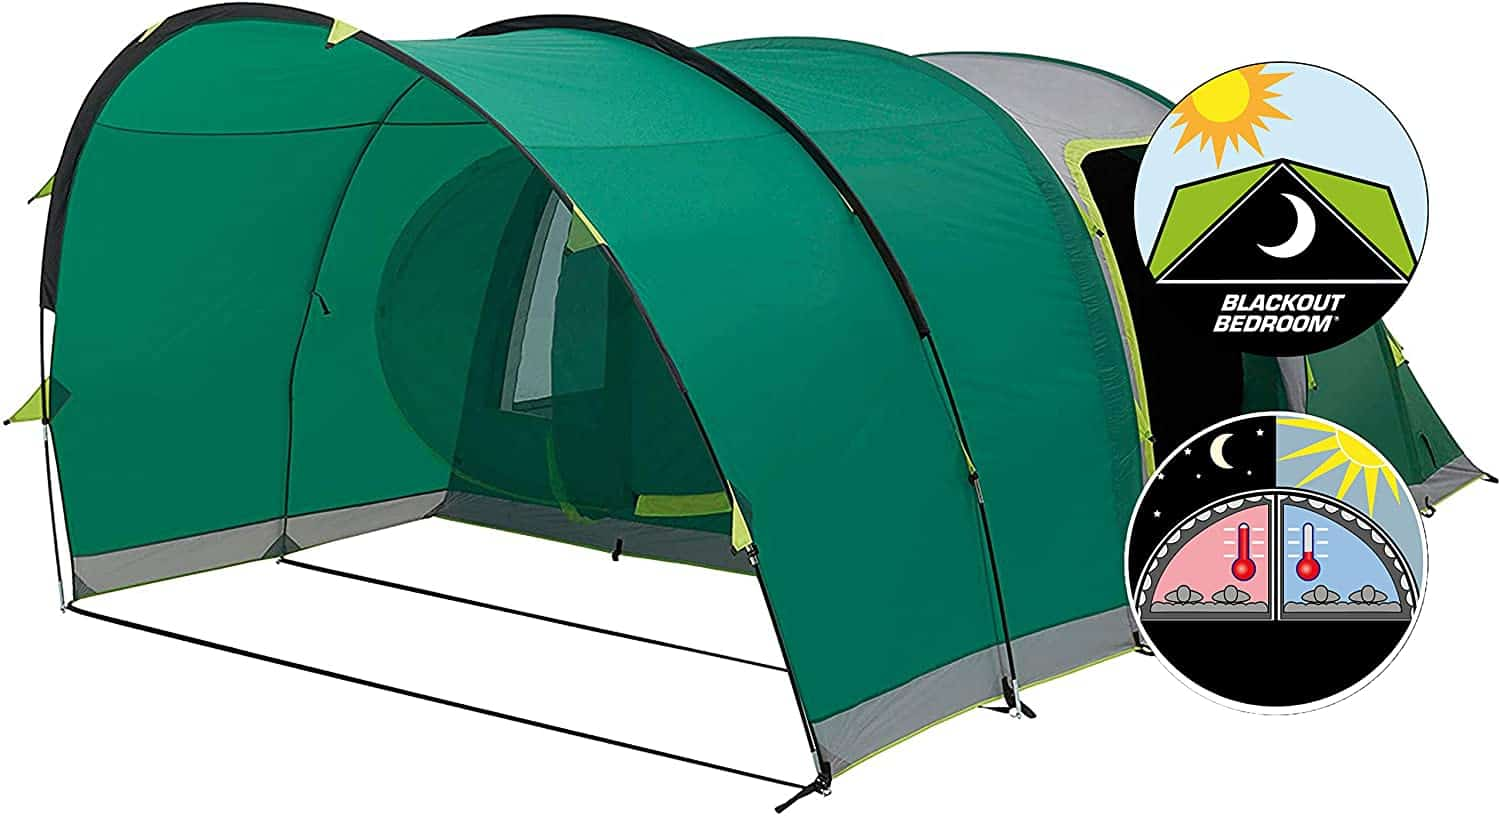 AirValdes 4 Tent - Blackout Bedroom Lining